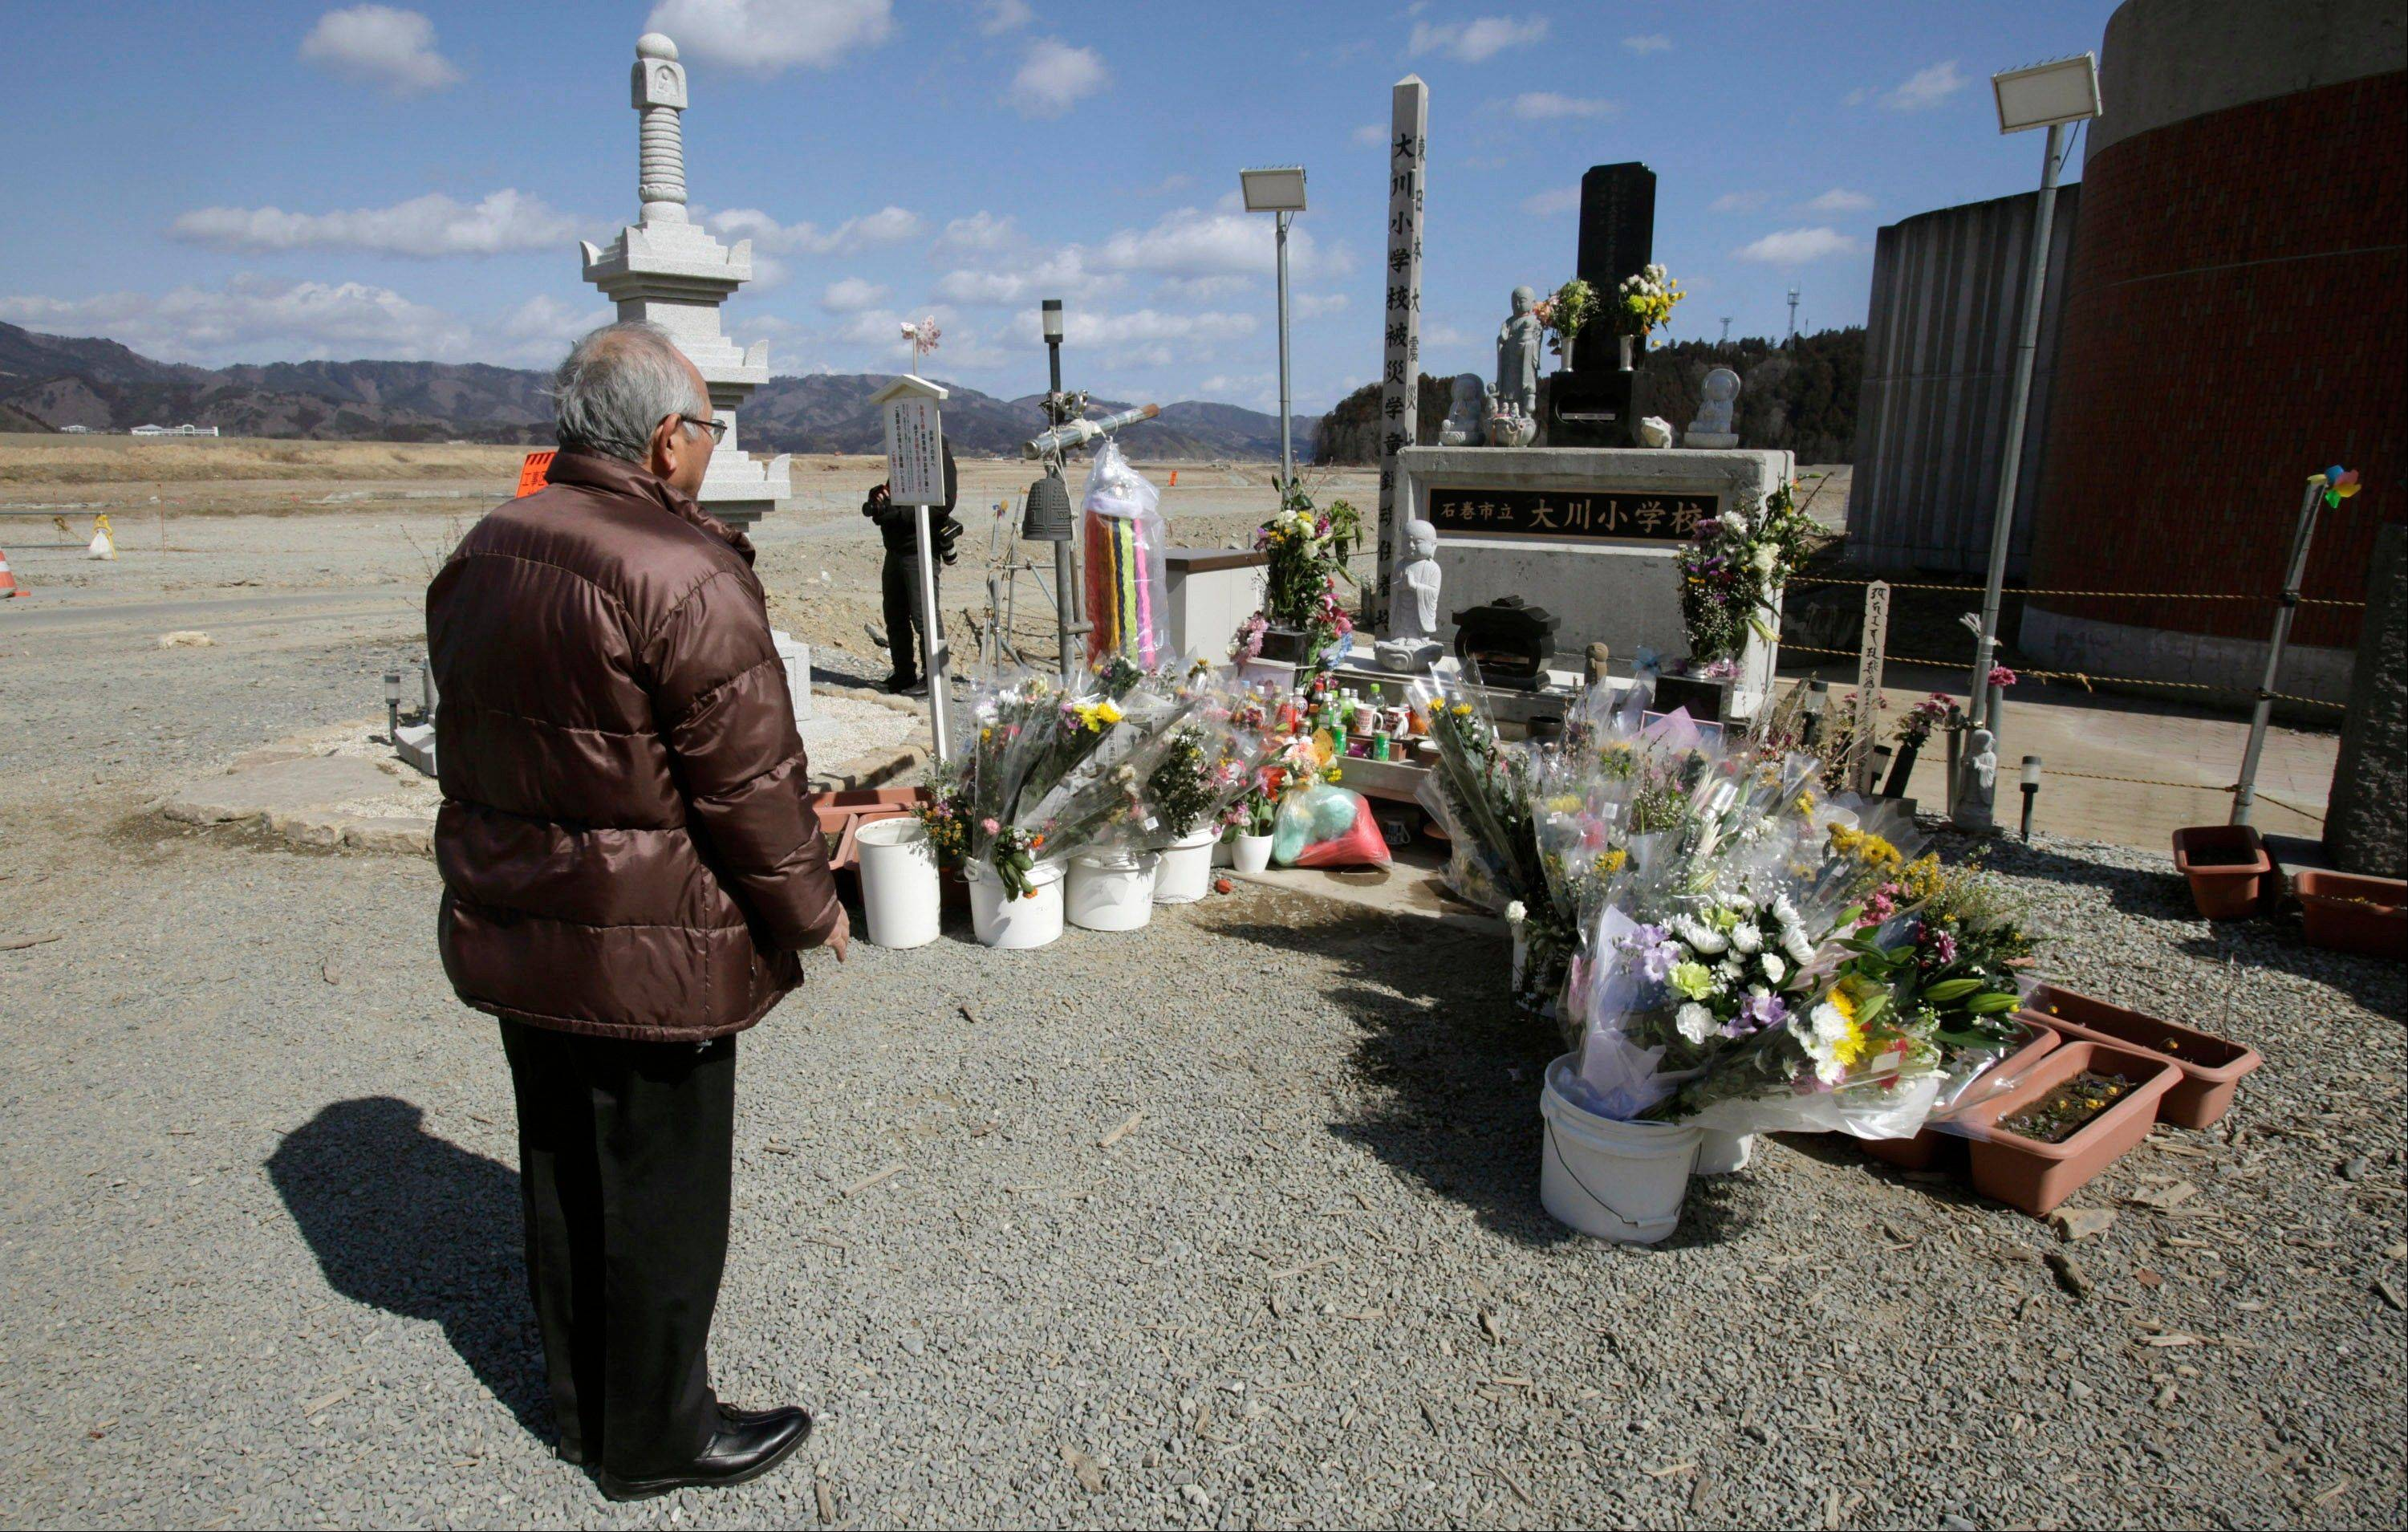 A man offers prayers in front of the main entrance of Okawa Elementary School where 74 of the 108 students went missing after the March 11 tsunami in Ishinomaki, Miyagi prefecture, Japan, Monday, March 11, 2013. The two-year anniversary Monday of Japan's devastating earthquake, tsunami and nuclear catastrophe is serving to spotlight the stakes of the country's struggles to clean up radiation, rebuild lost communities and determine new energy and economic strategies.